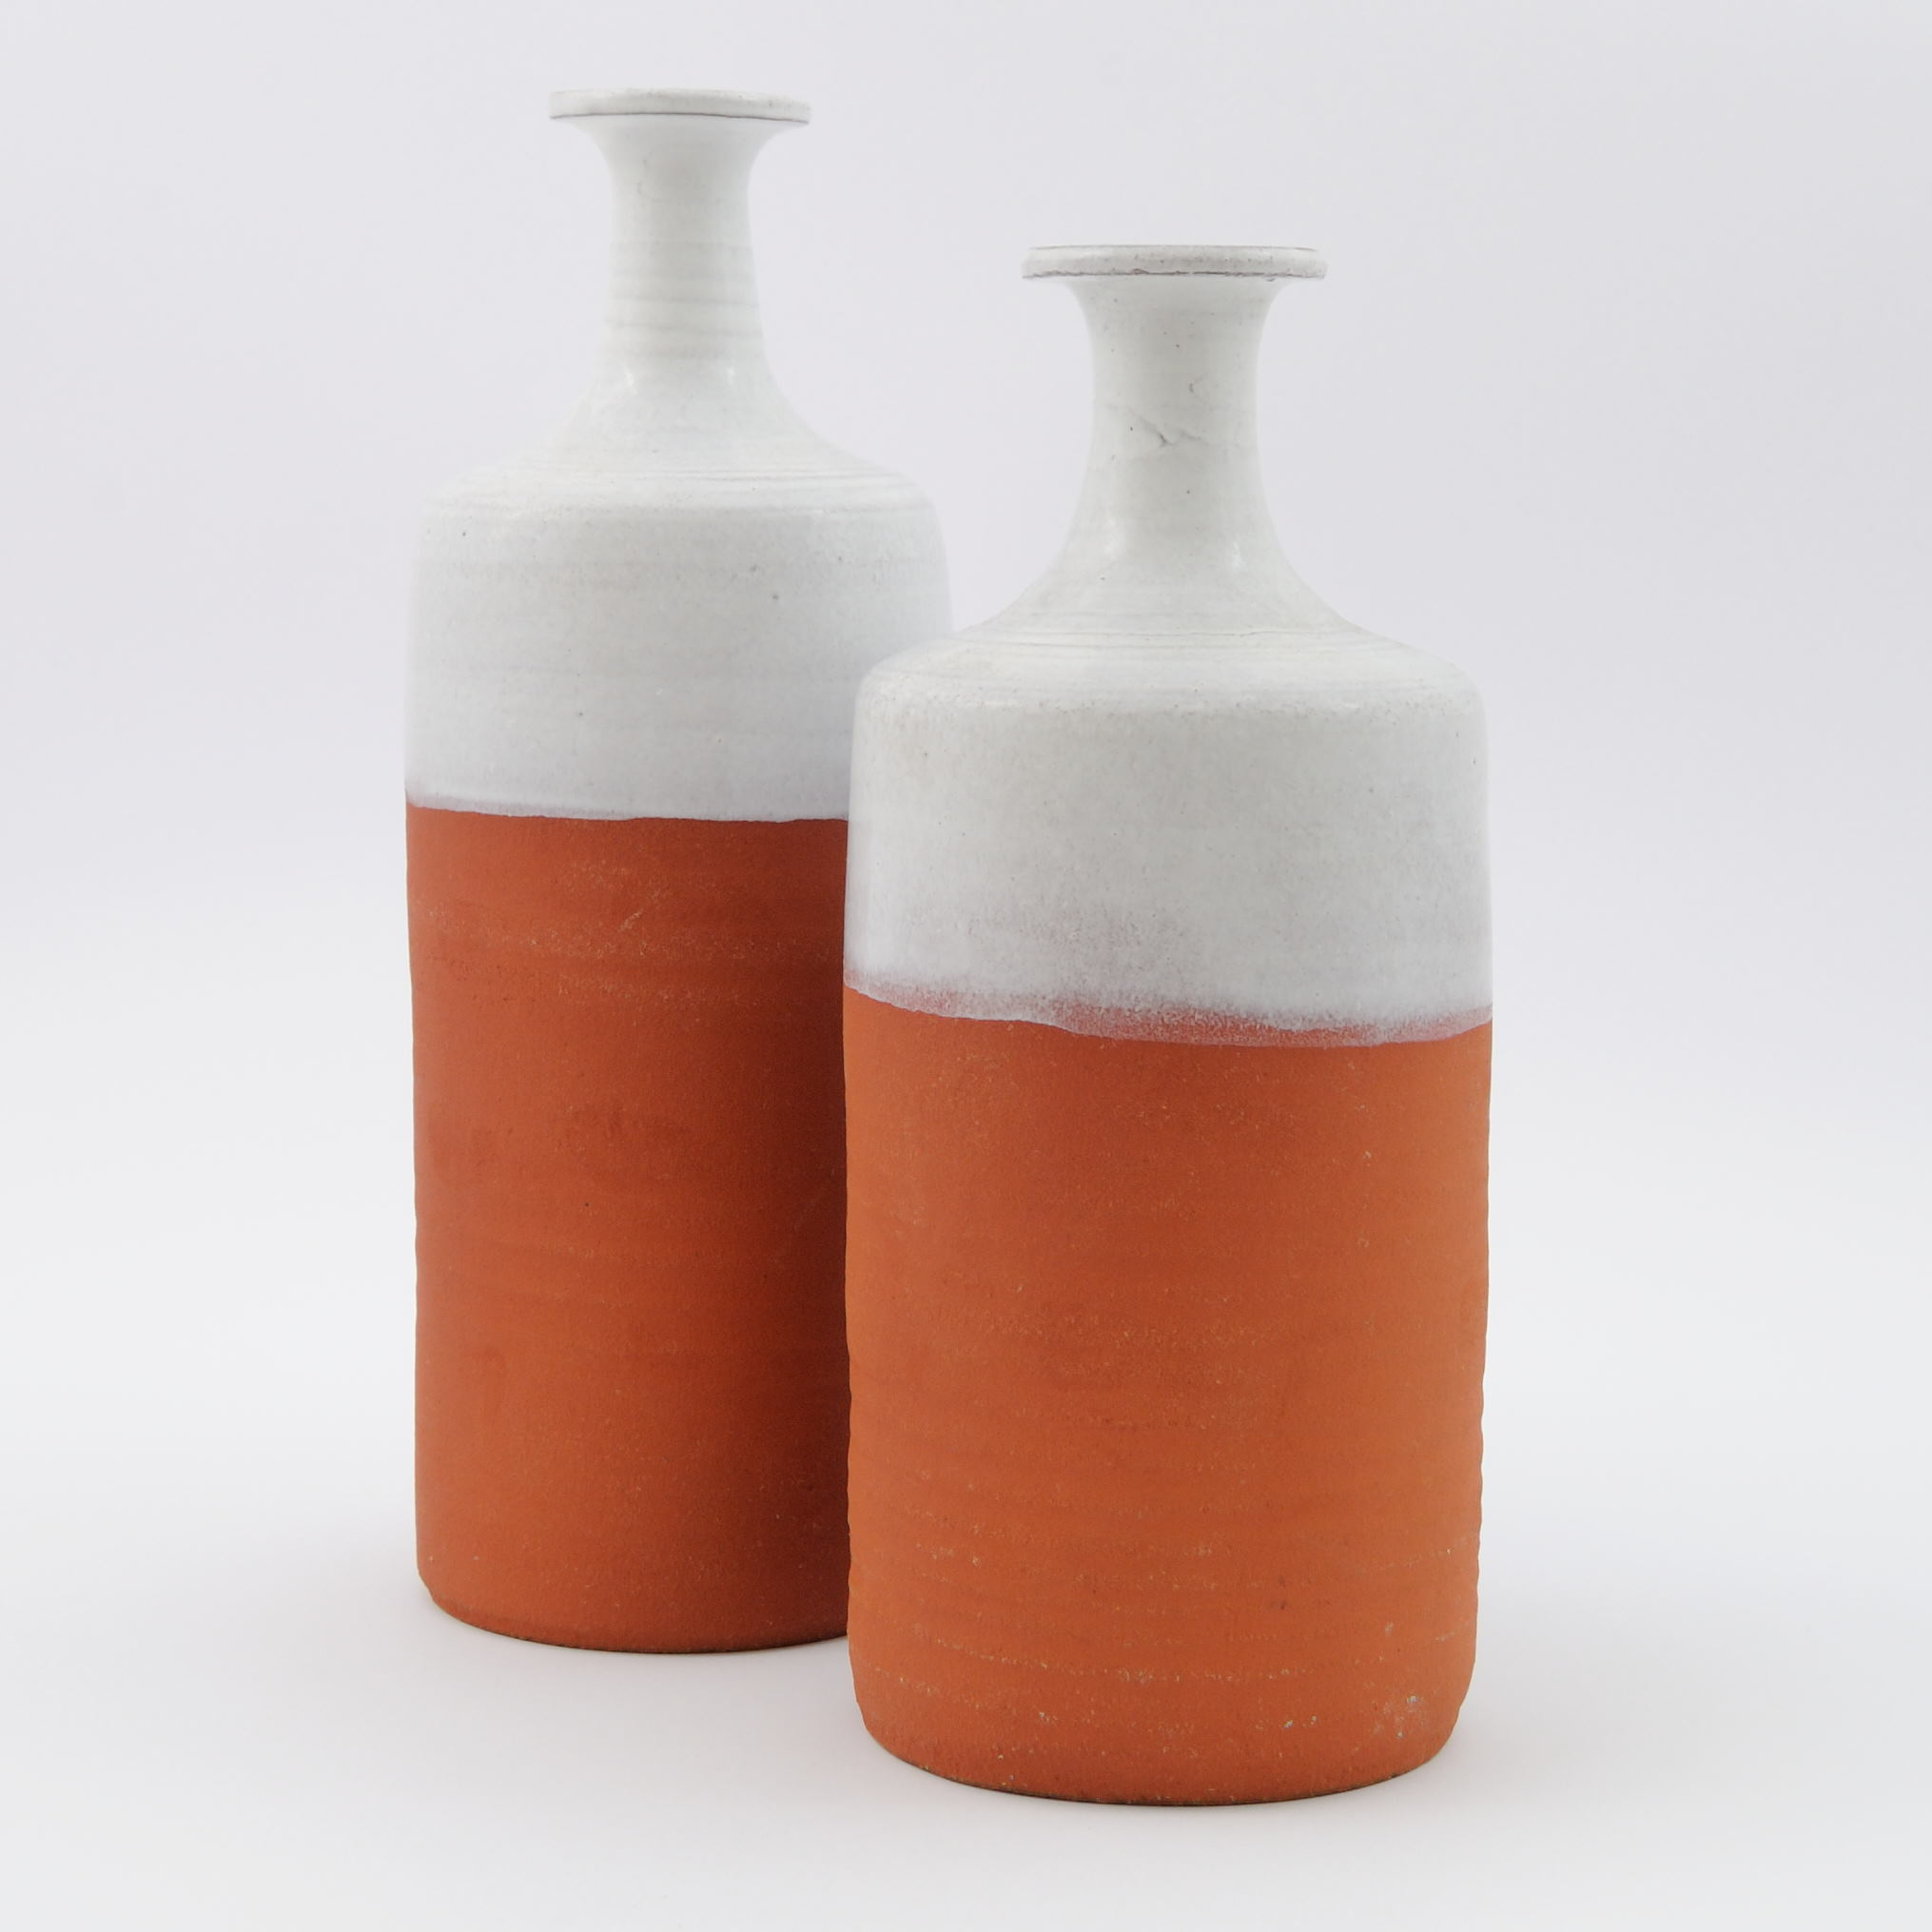 Ceramic Vases Denmark 1950s 60s TR SOR Antiques And Design